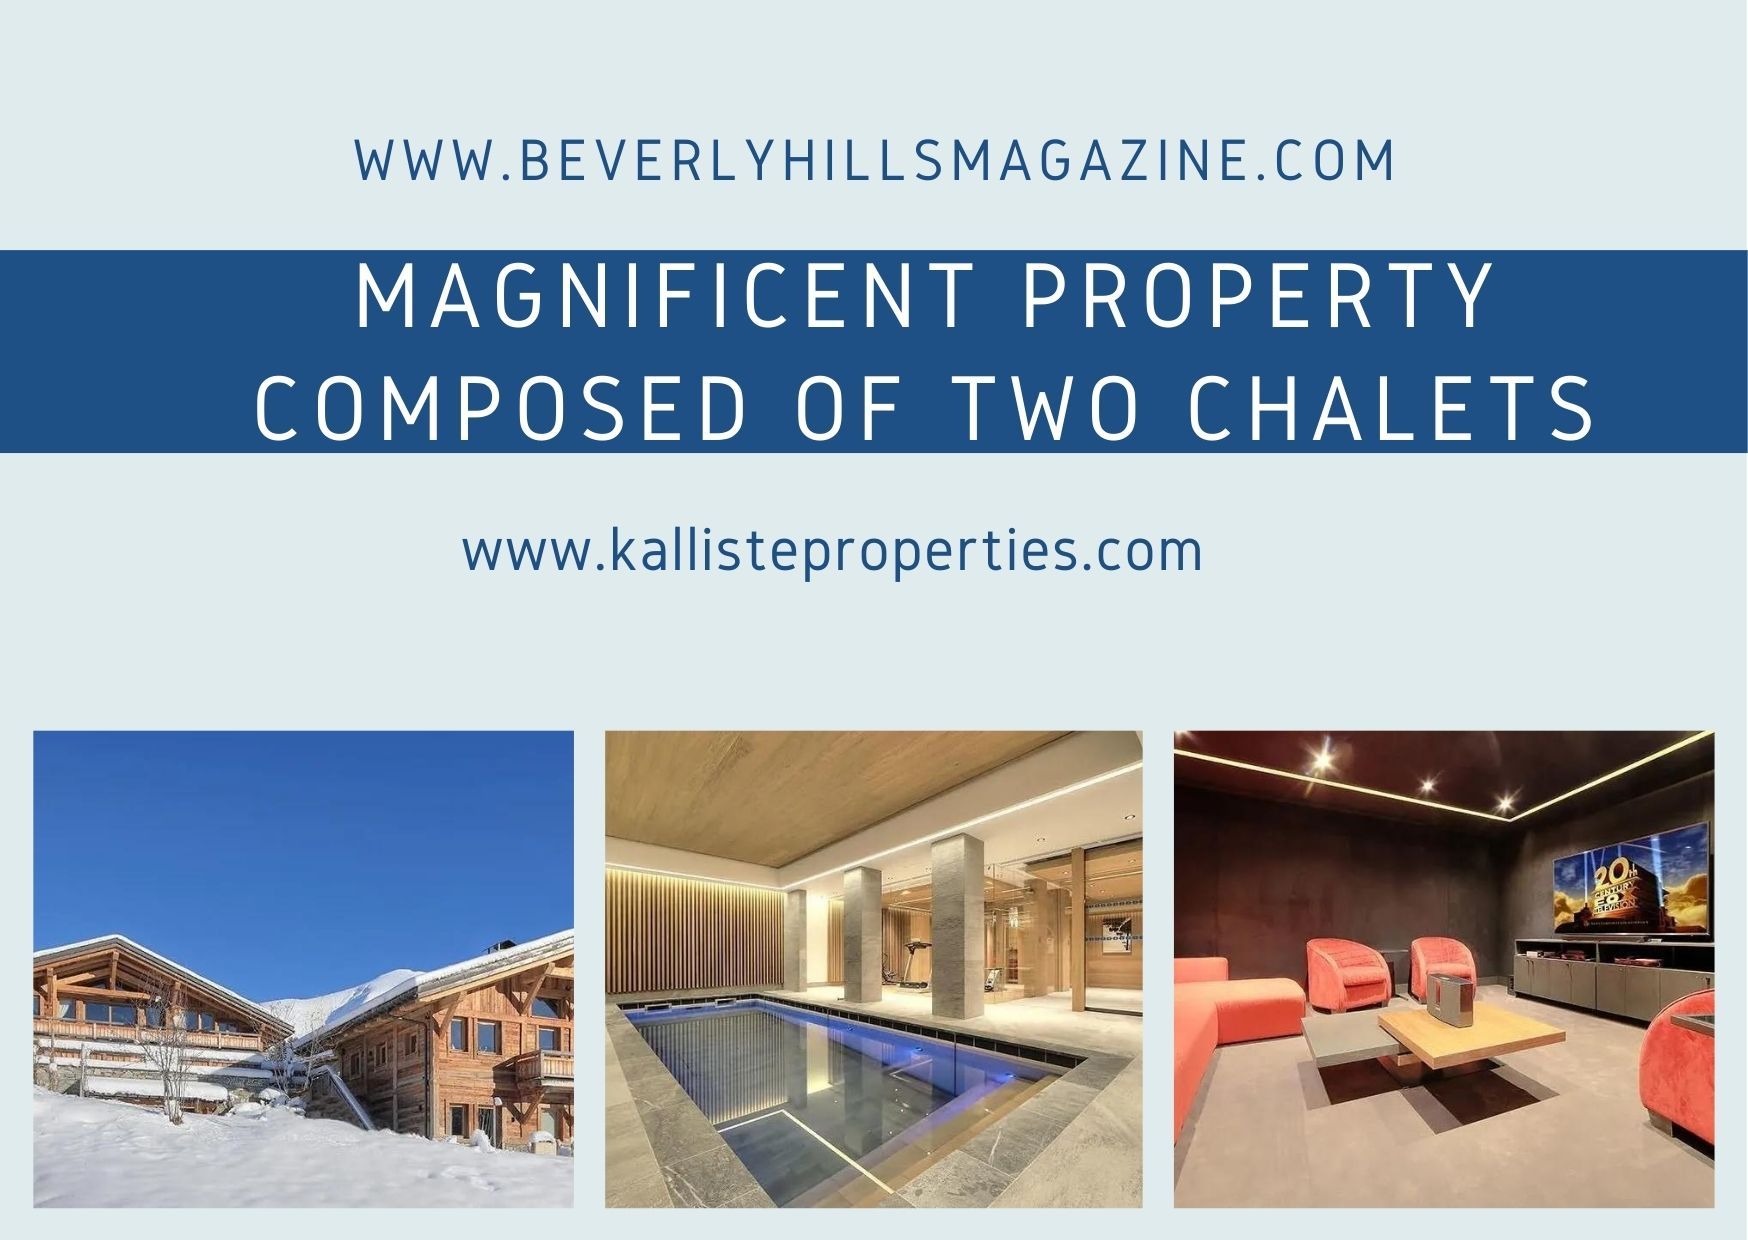 Beverly Hills Magazine French Property Magnificent Property Composed Of Two Chalets #bevhillsmag #luxuryrealestate #frenchproperty #chaletforsale